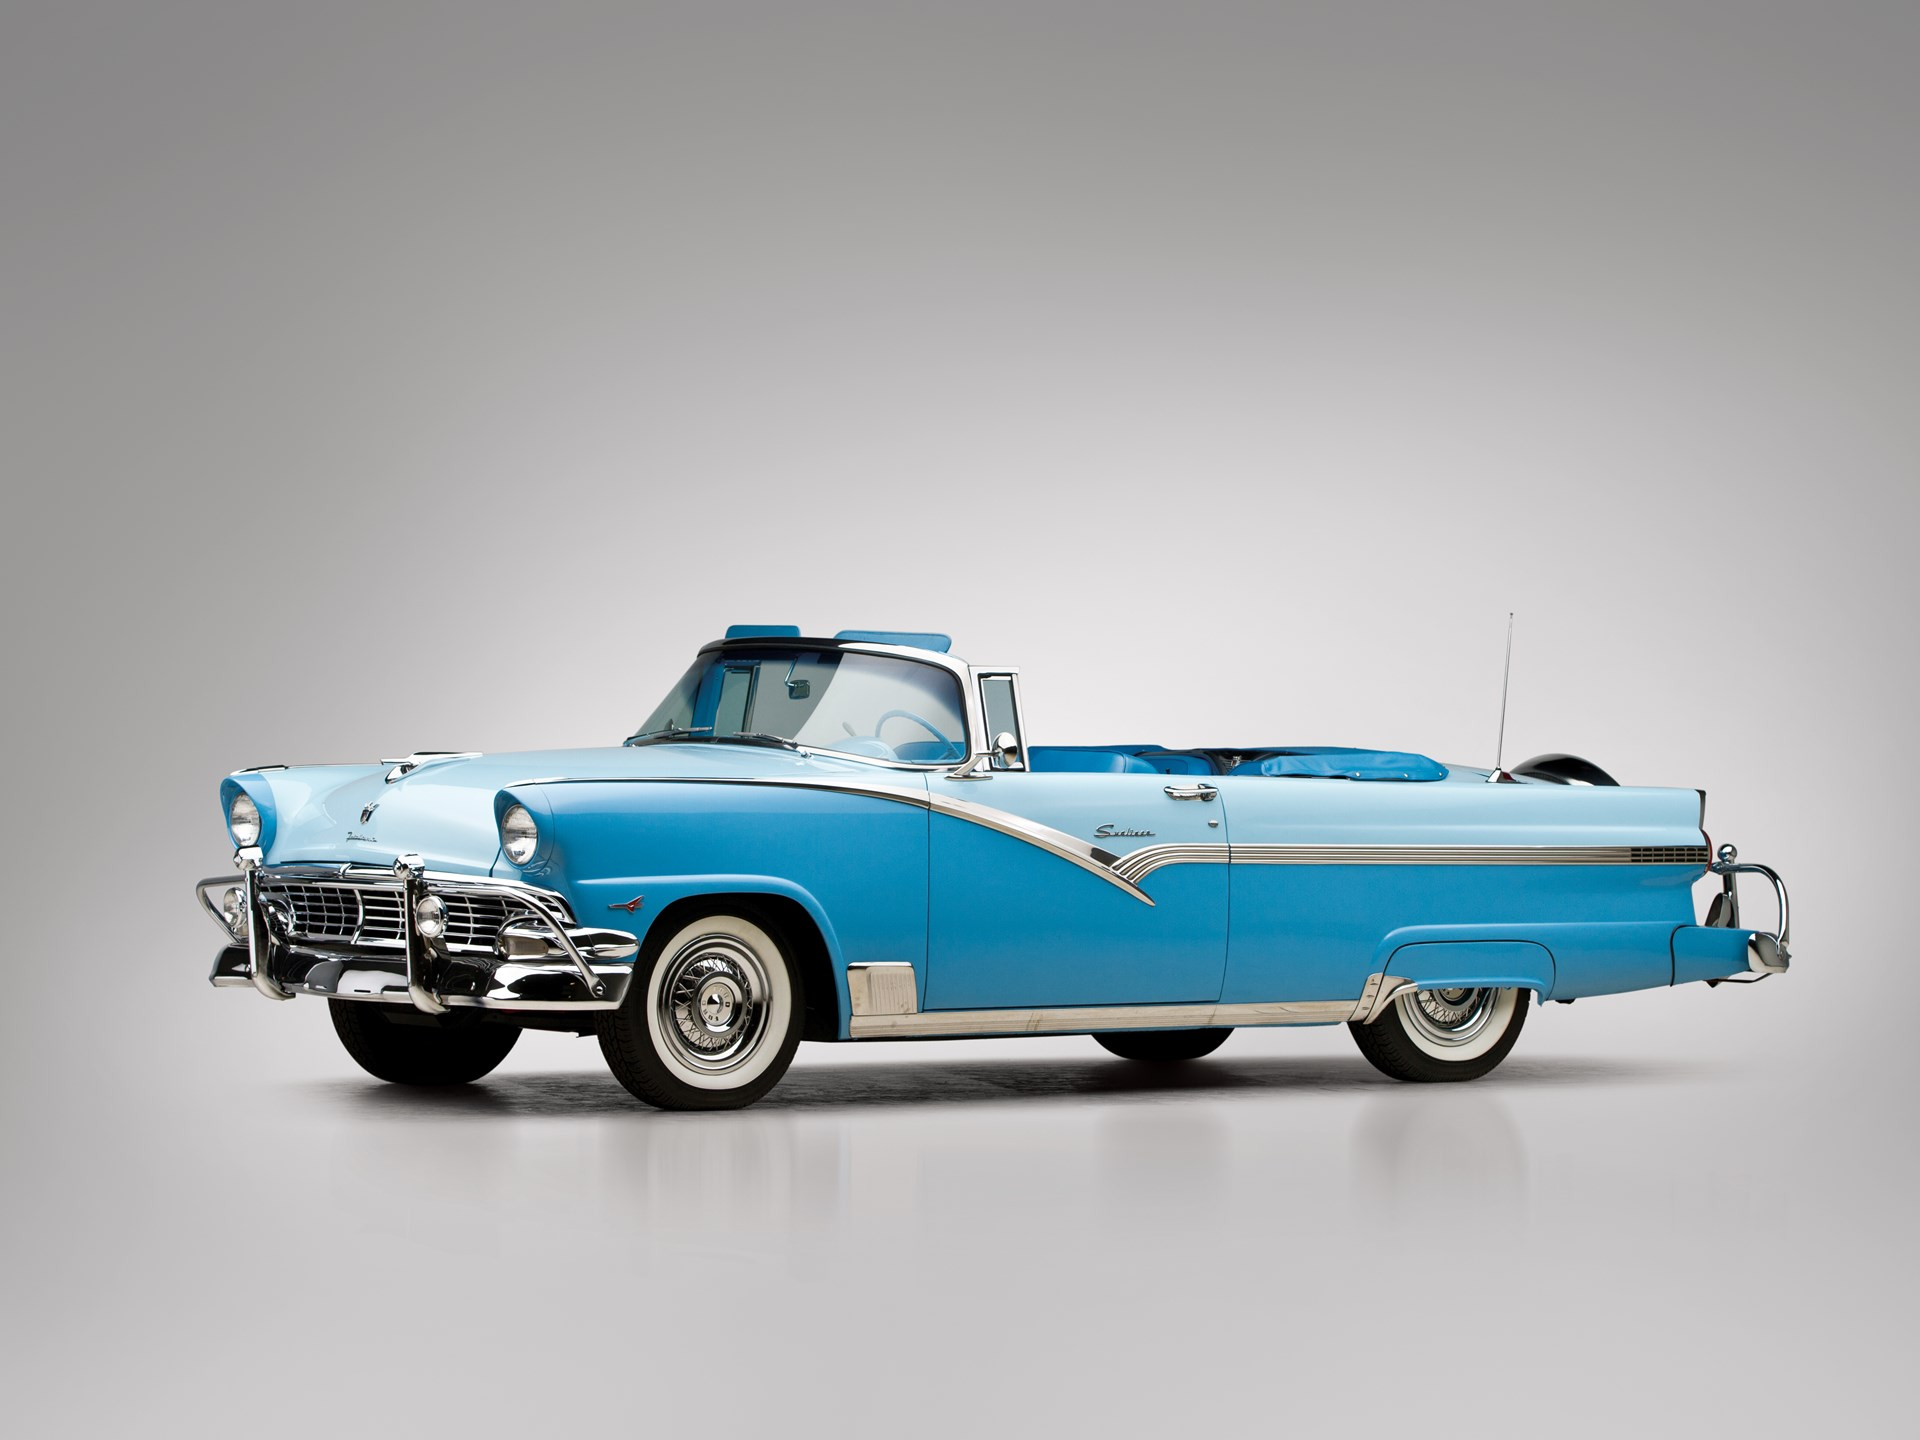 1956 Ford Fairlane Sunliner Convertible Wiring Diagrams 1954 Crown Victoria Rm Sotheby S The John Rh Rmsothebys Com 1955